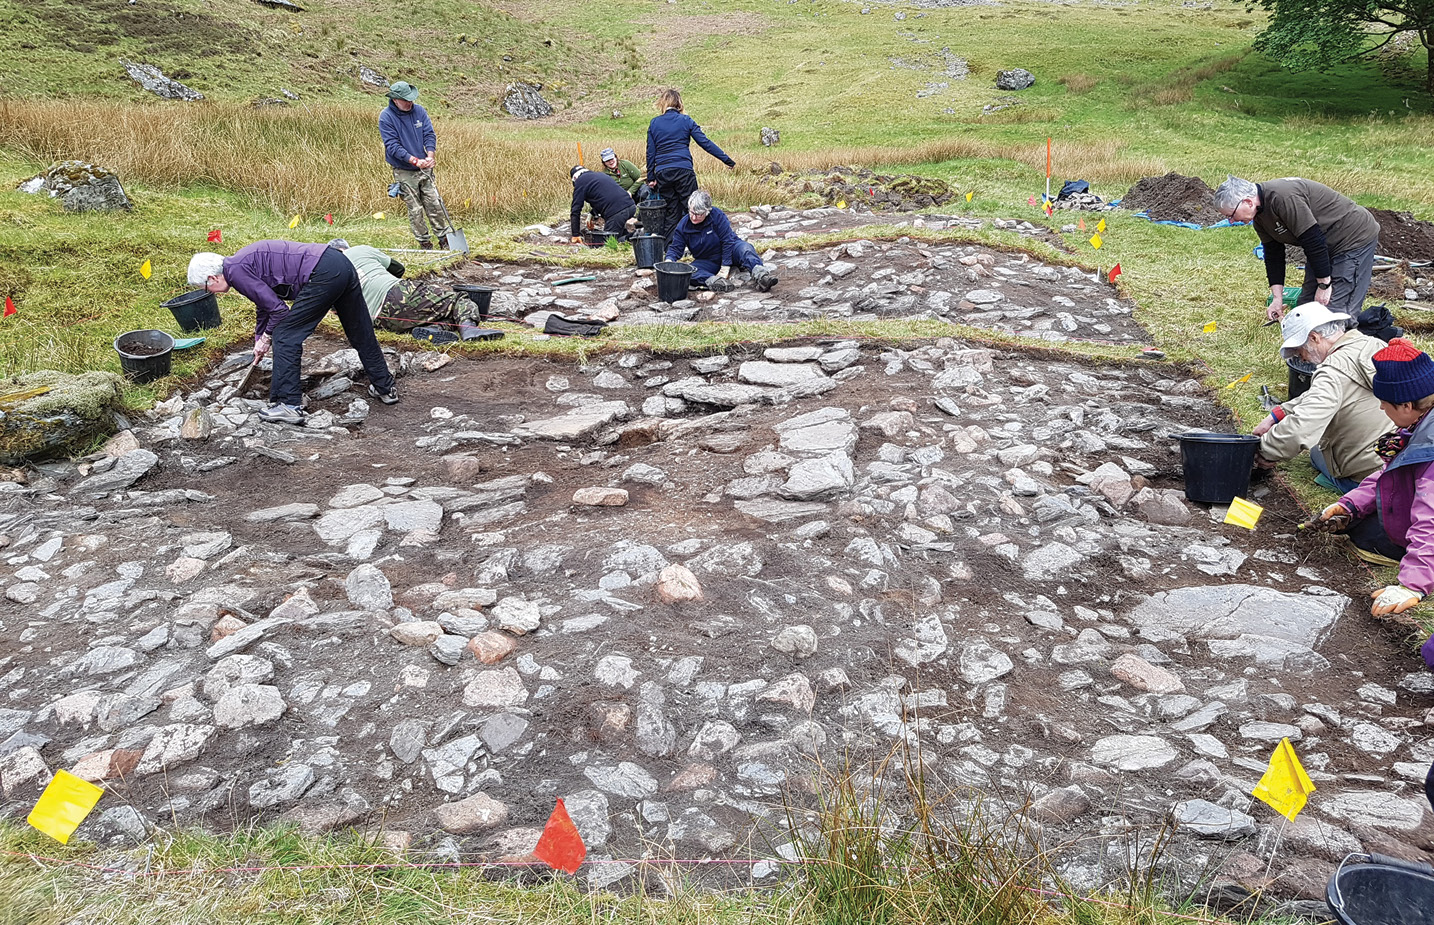 BELOW Although much of Structure 1's stone had been robbed out for later building projects, its paved floor remained largely intact, suggesting that this surface had been overgrown and hidden at the time of the recycling.